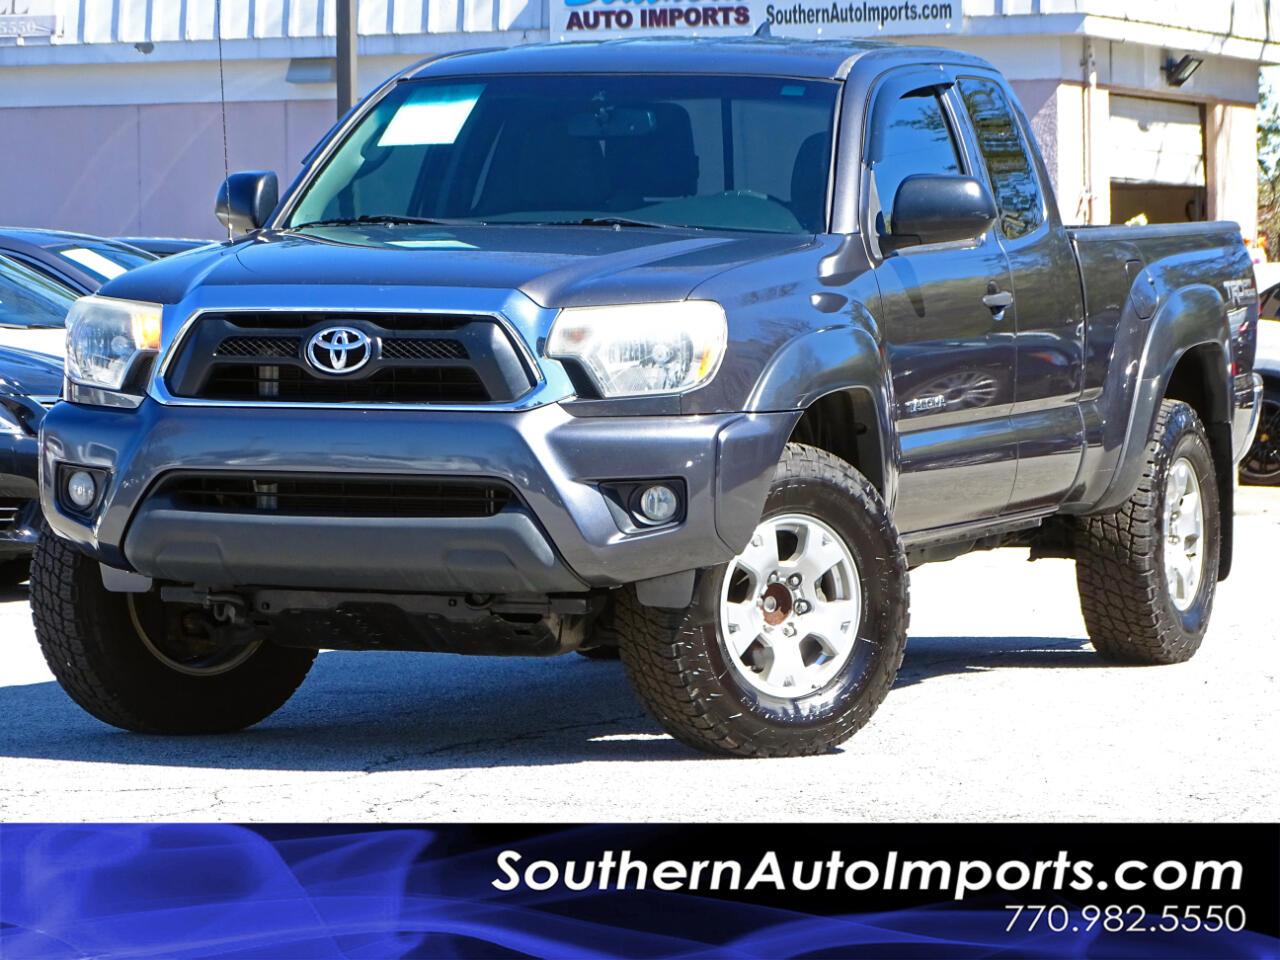 2012 Toyota Tacoma Pre Runner 2WD w/Back up Camera Satellite